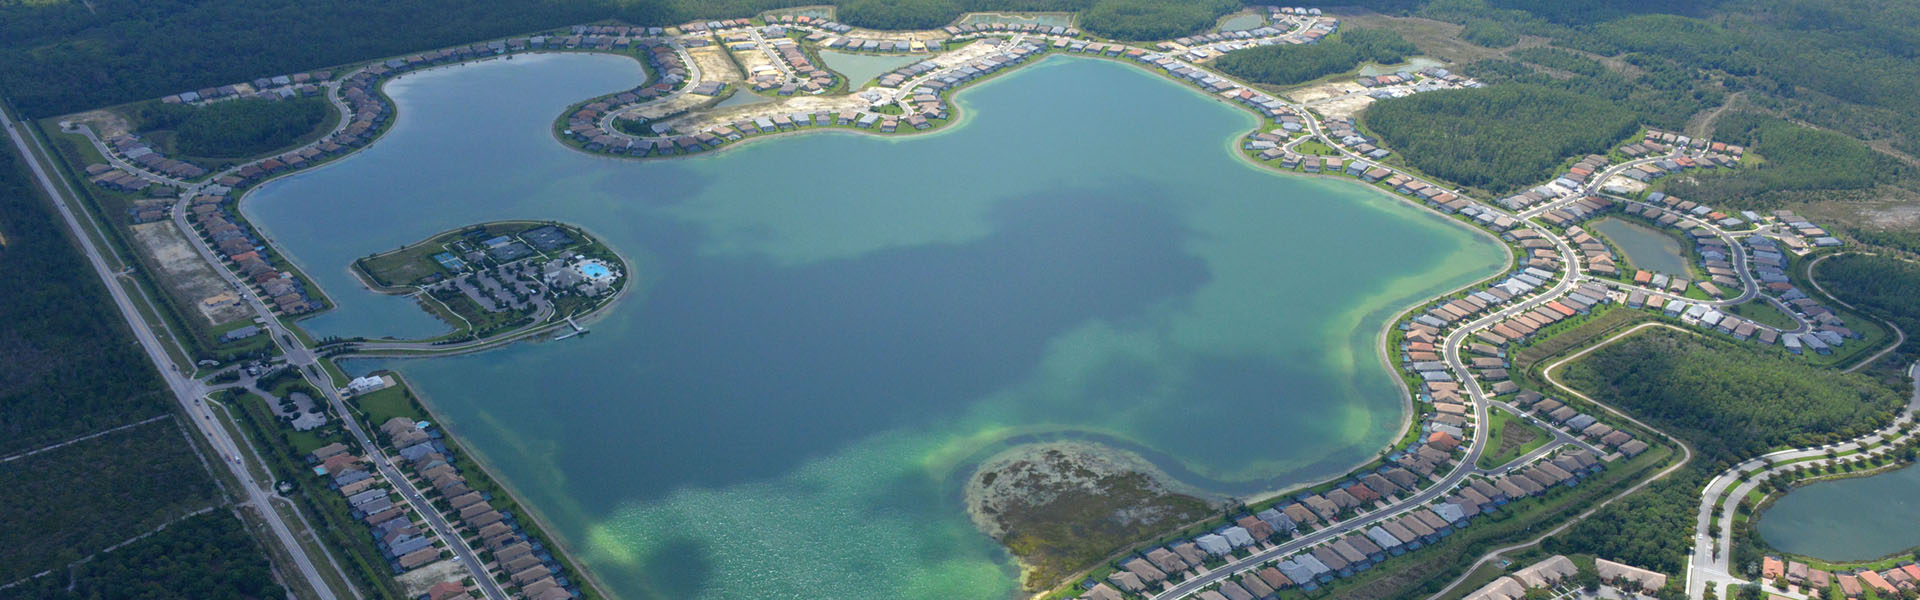 Corkscrew Shores Amenity Aerial-